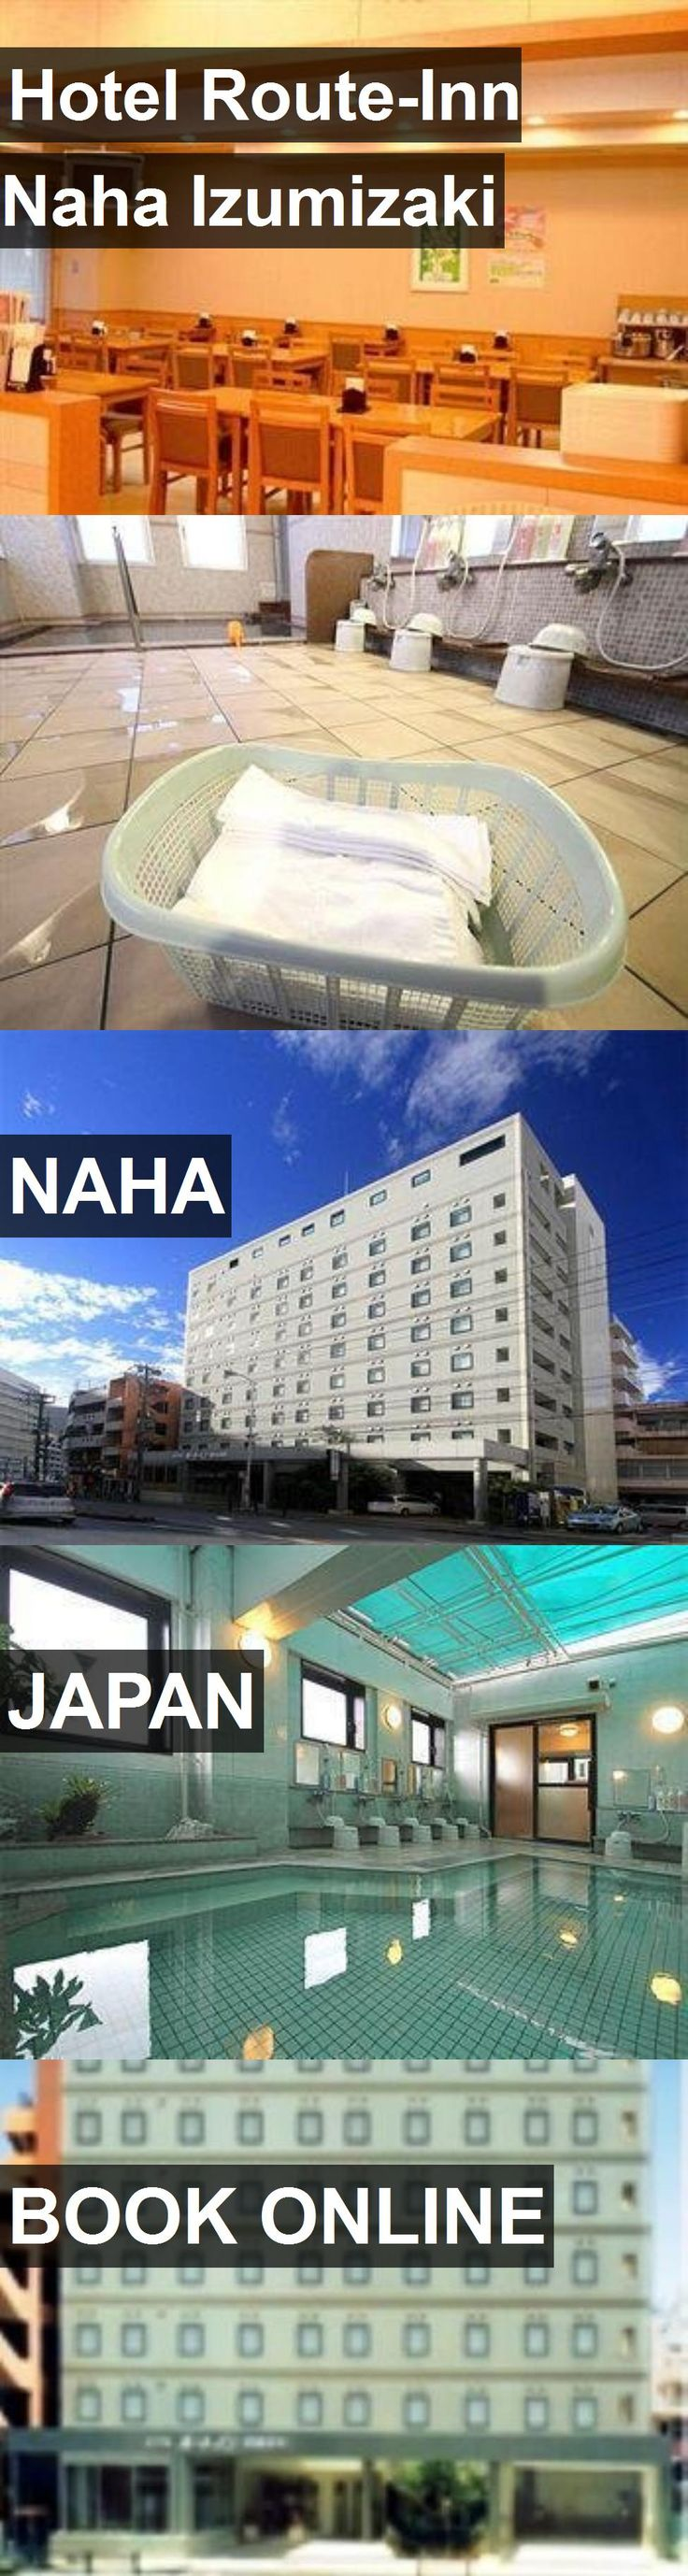 Hotel Hotel Route-Inn Naha Izumizaki in Naha, Japan. For more information, photos, reviews and best prices please follow the link. #Japan #Naha #HotelRoute-InnNahaIzumizaki #hotel #travel #vacation